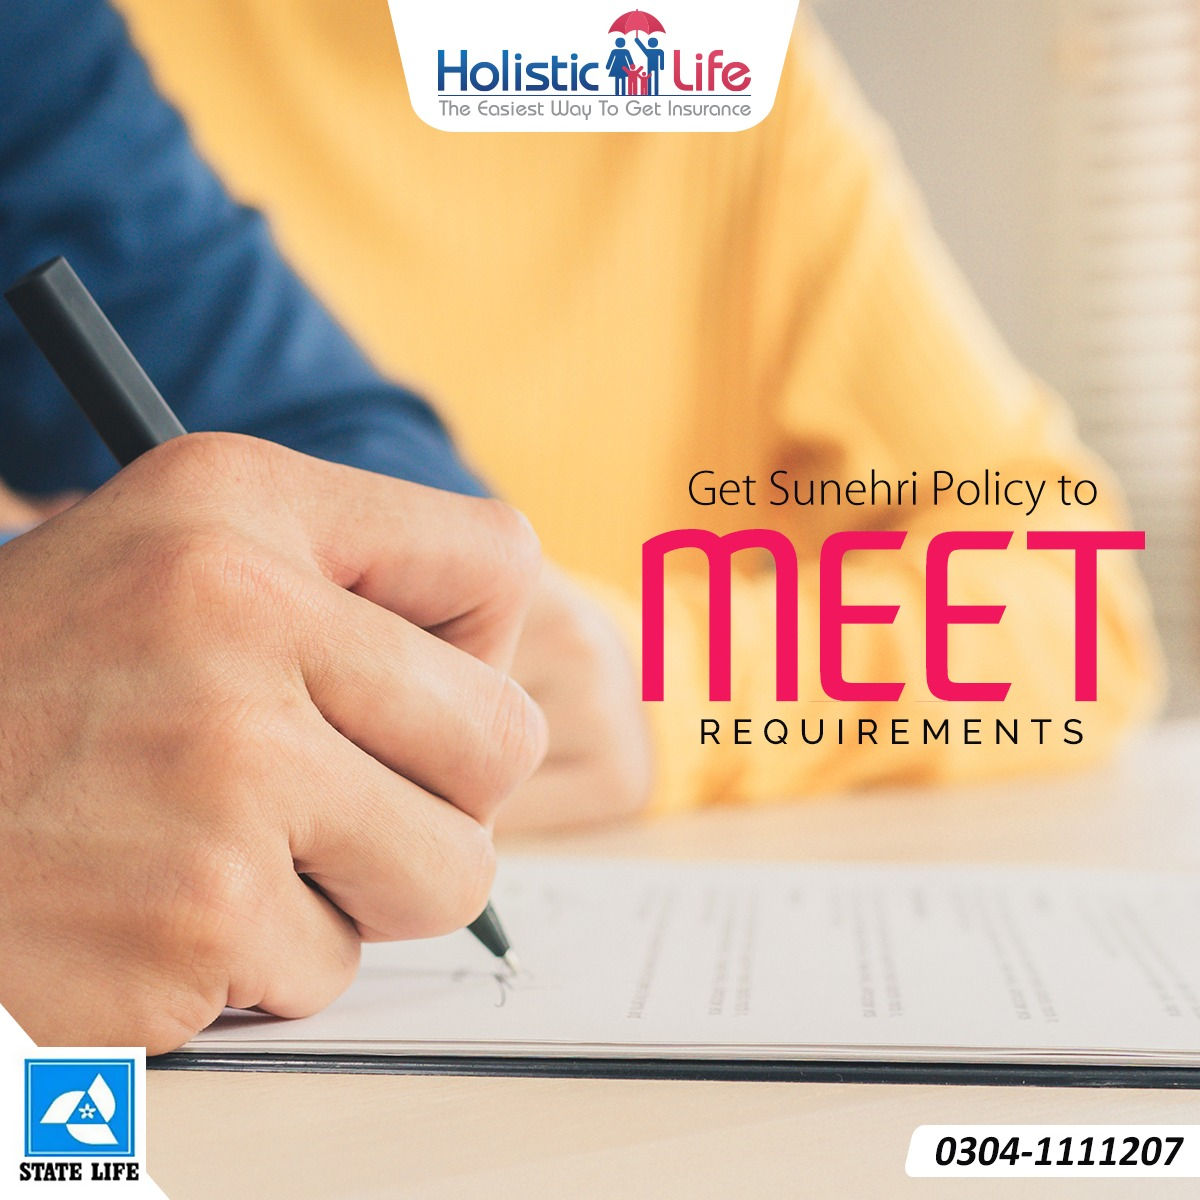 Now, get a plan that will give you benefits at the time when you have more expenses and low income.   For Contact: 03041111207 Website: http://www.holisticlife.com.pk   #insurance #lifeinsurance #insurancecoverage #insuranceclaims #HolisticLife #healthinsurance #bonuspic.twitter.com/KlrcHq7IKo